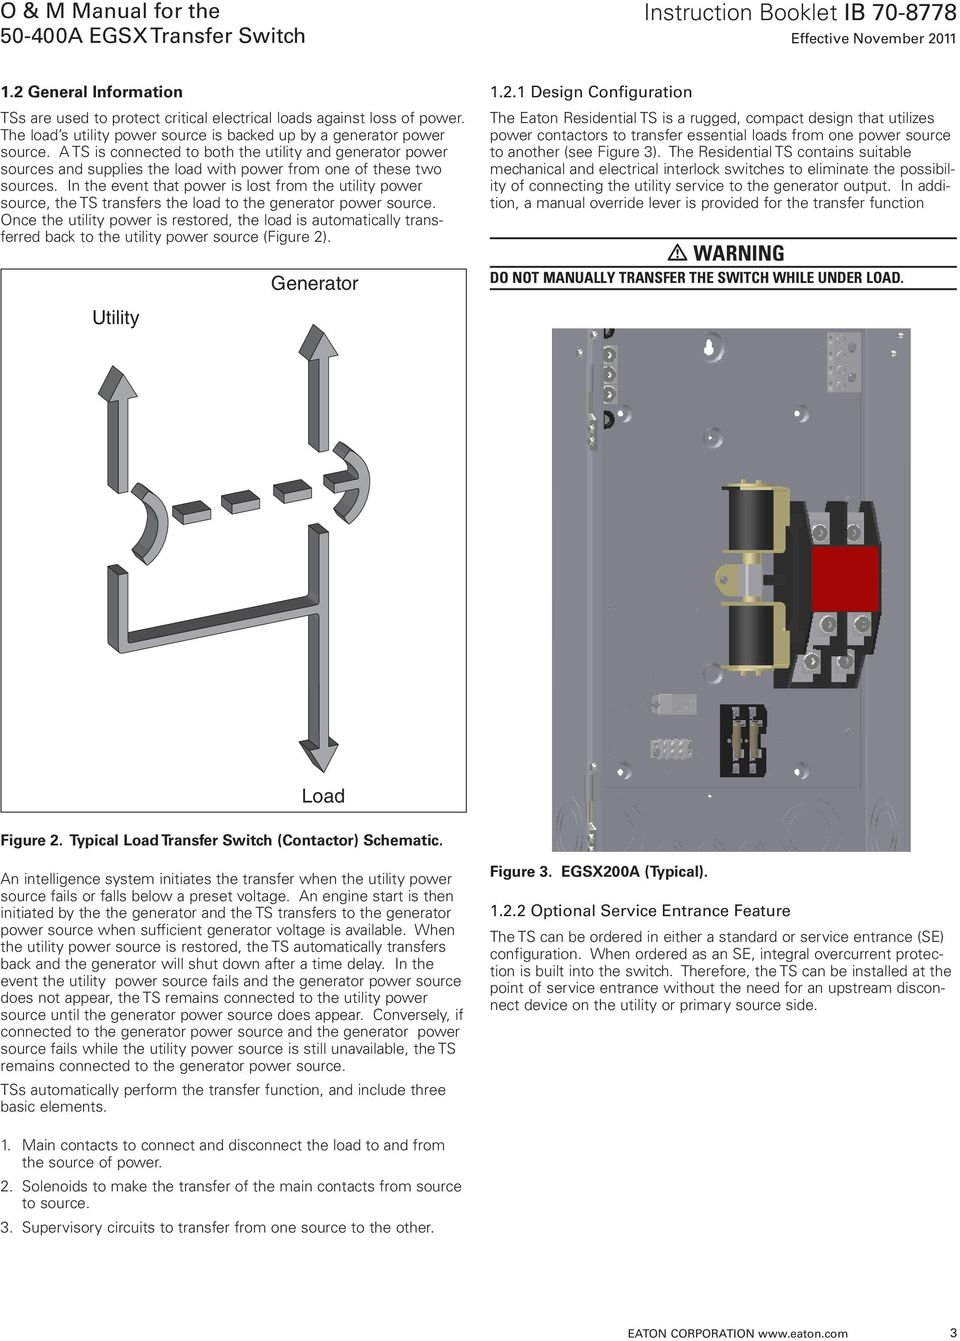 O M Manual For The A Egsx Transfer Switch Pdf Eaton Pull Out Wiring Diagram Ts Is Connected To Both Utility And Generator Power Sources Supplies Load